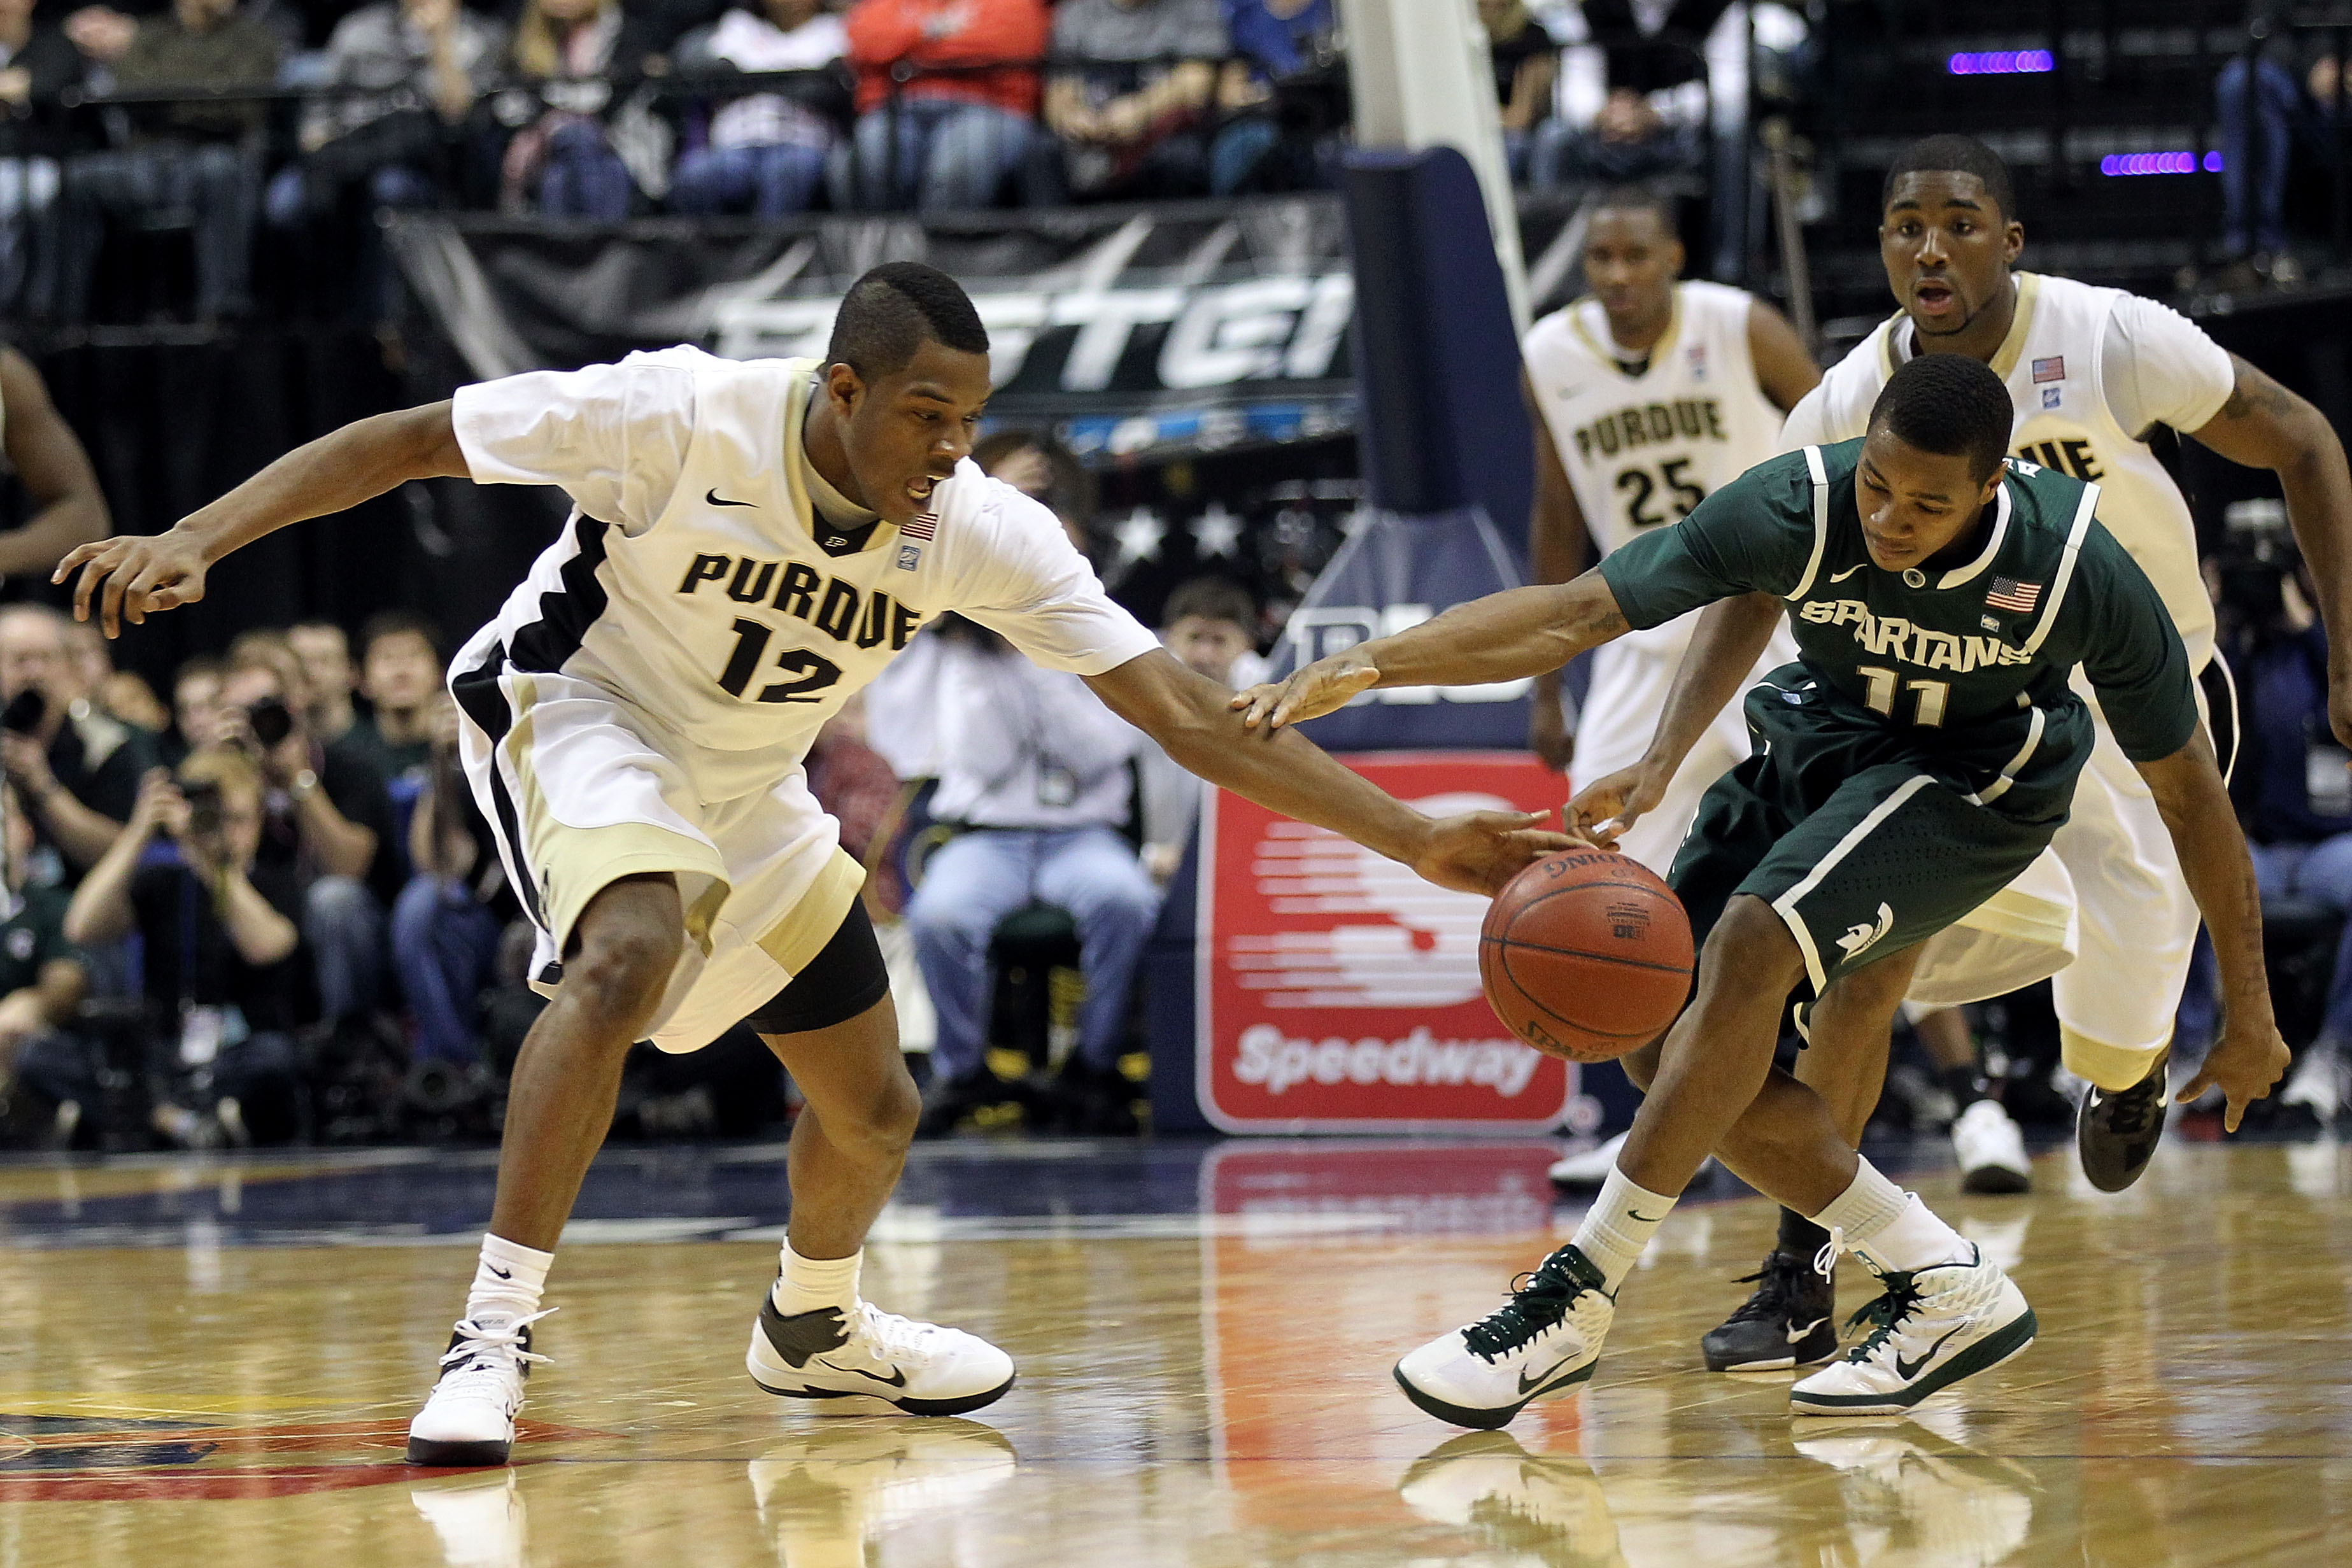 INDIANAPOLIS, IN - MARCH 11:  Kelsey Barlow #12 of the Purdue Boilermakers fights for a loose ball against Keith Appling #11 of the Michigan State Spartans during the quarterfinals of the 2011 Big Ten Men's Basketball Tournament at Conseco Fieldhouse on M